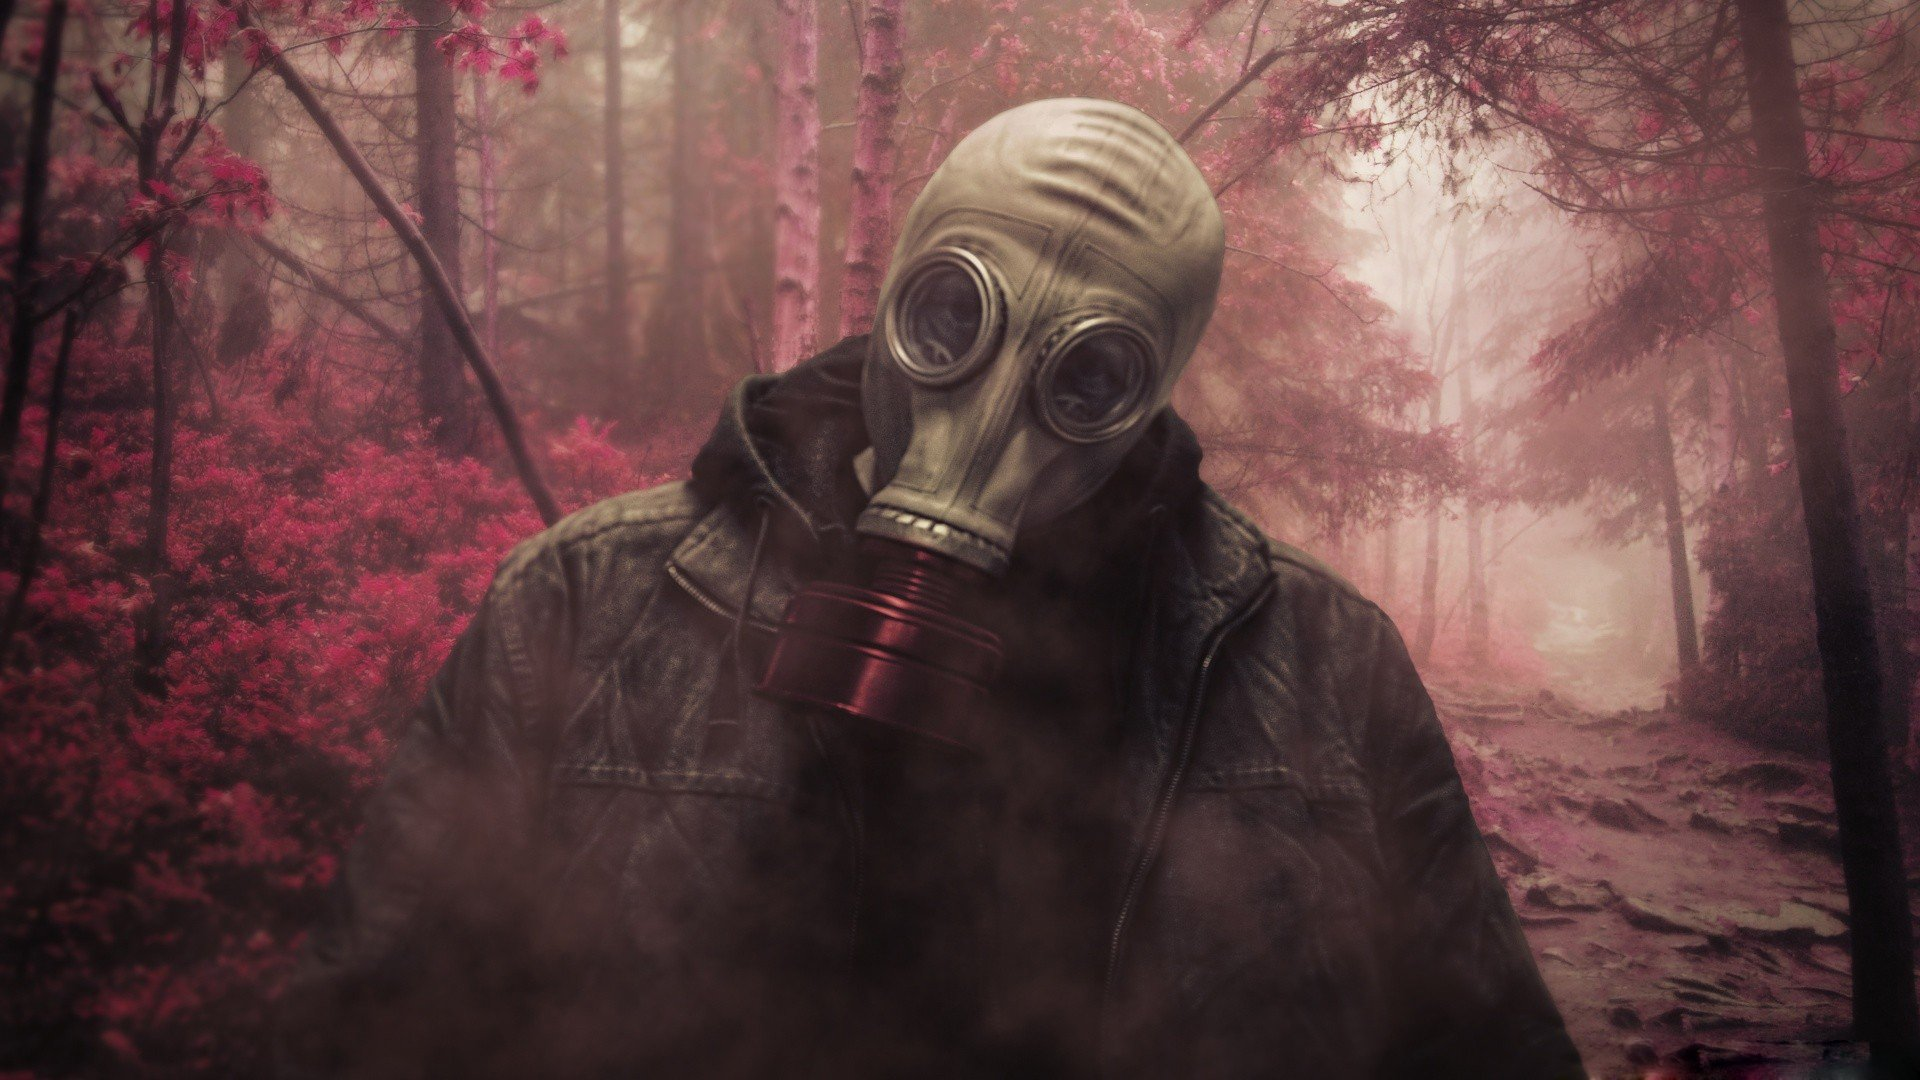 Pollution Mask Grove Air Wallpaper 1920x1080 550853 Wallpaperup